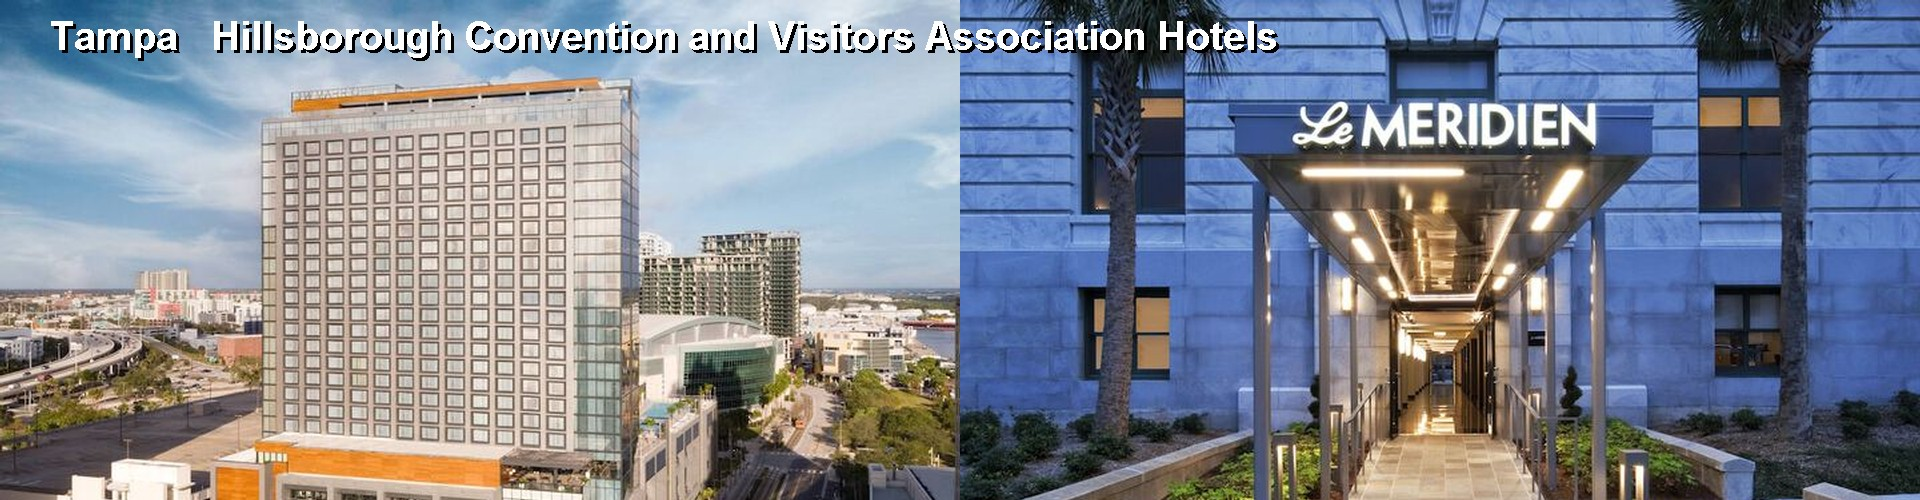 5 Best Hotels near Tampa Hillsborough Convention and Visitors Association